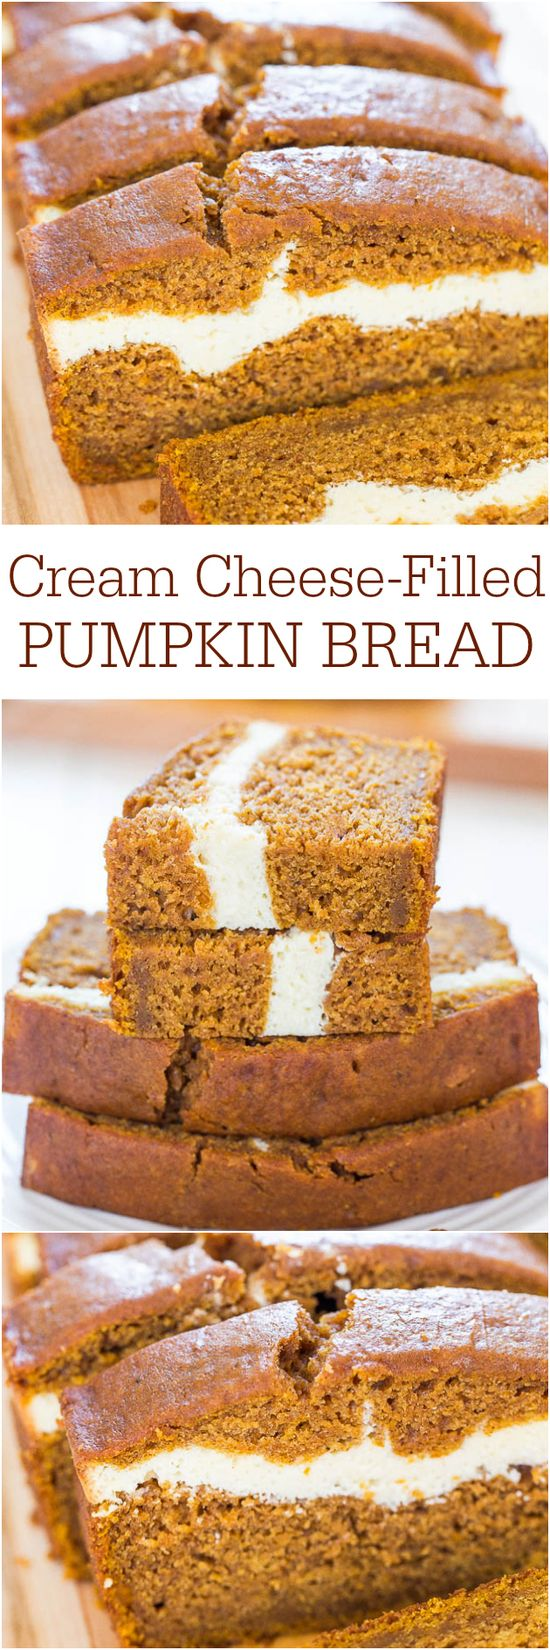 Cream Cheese-Filled